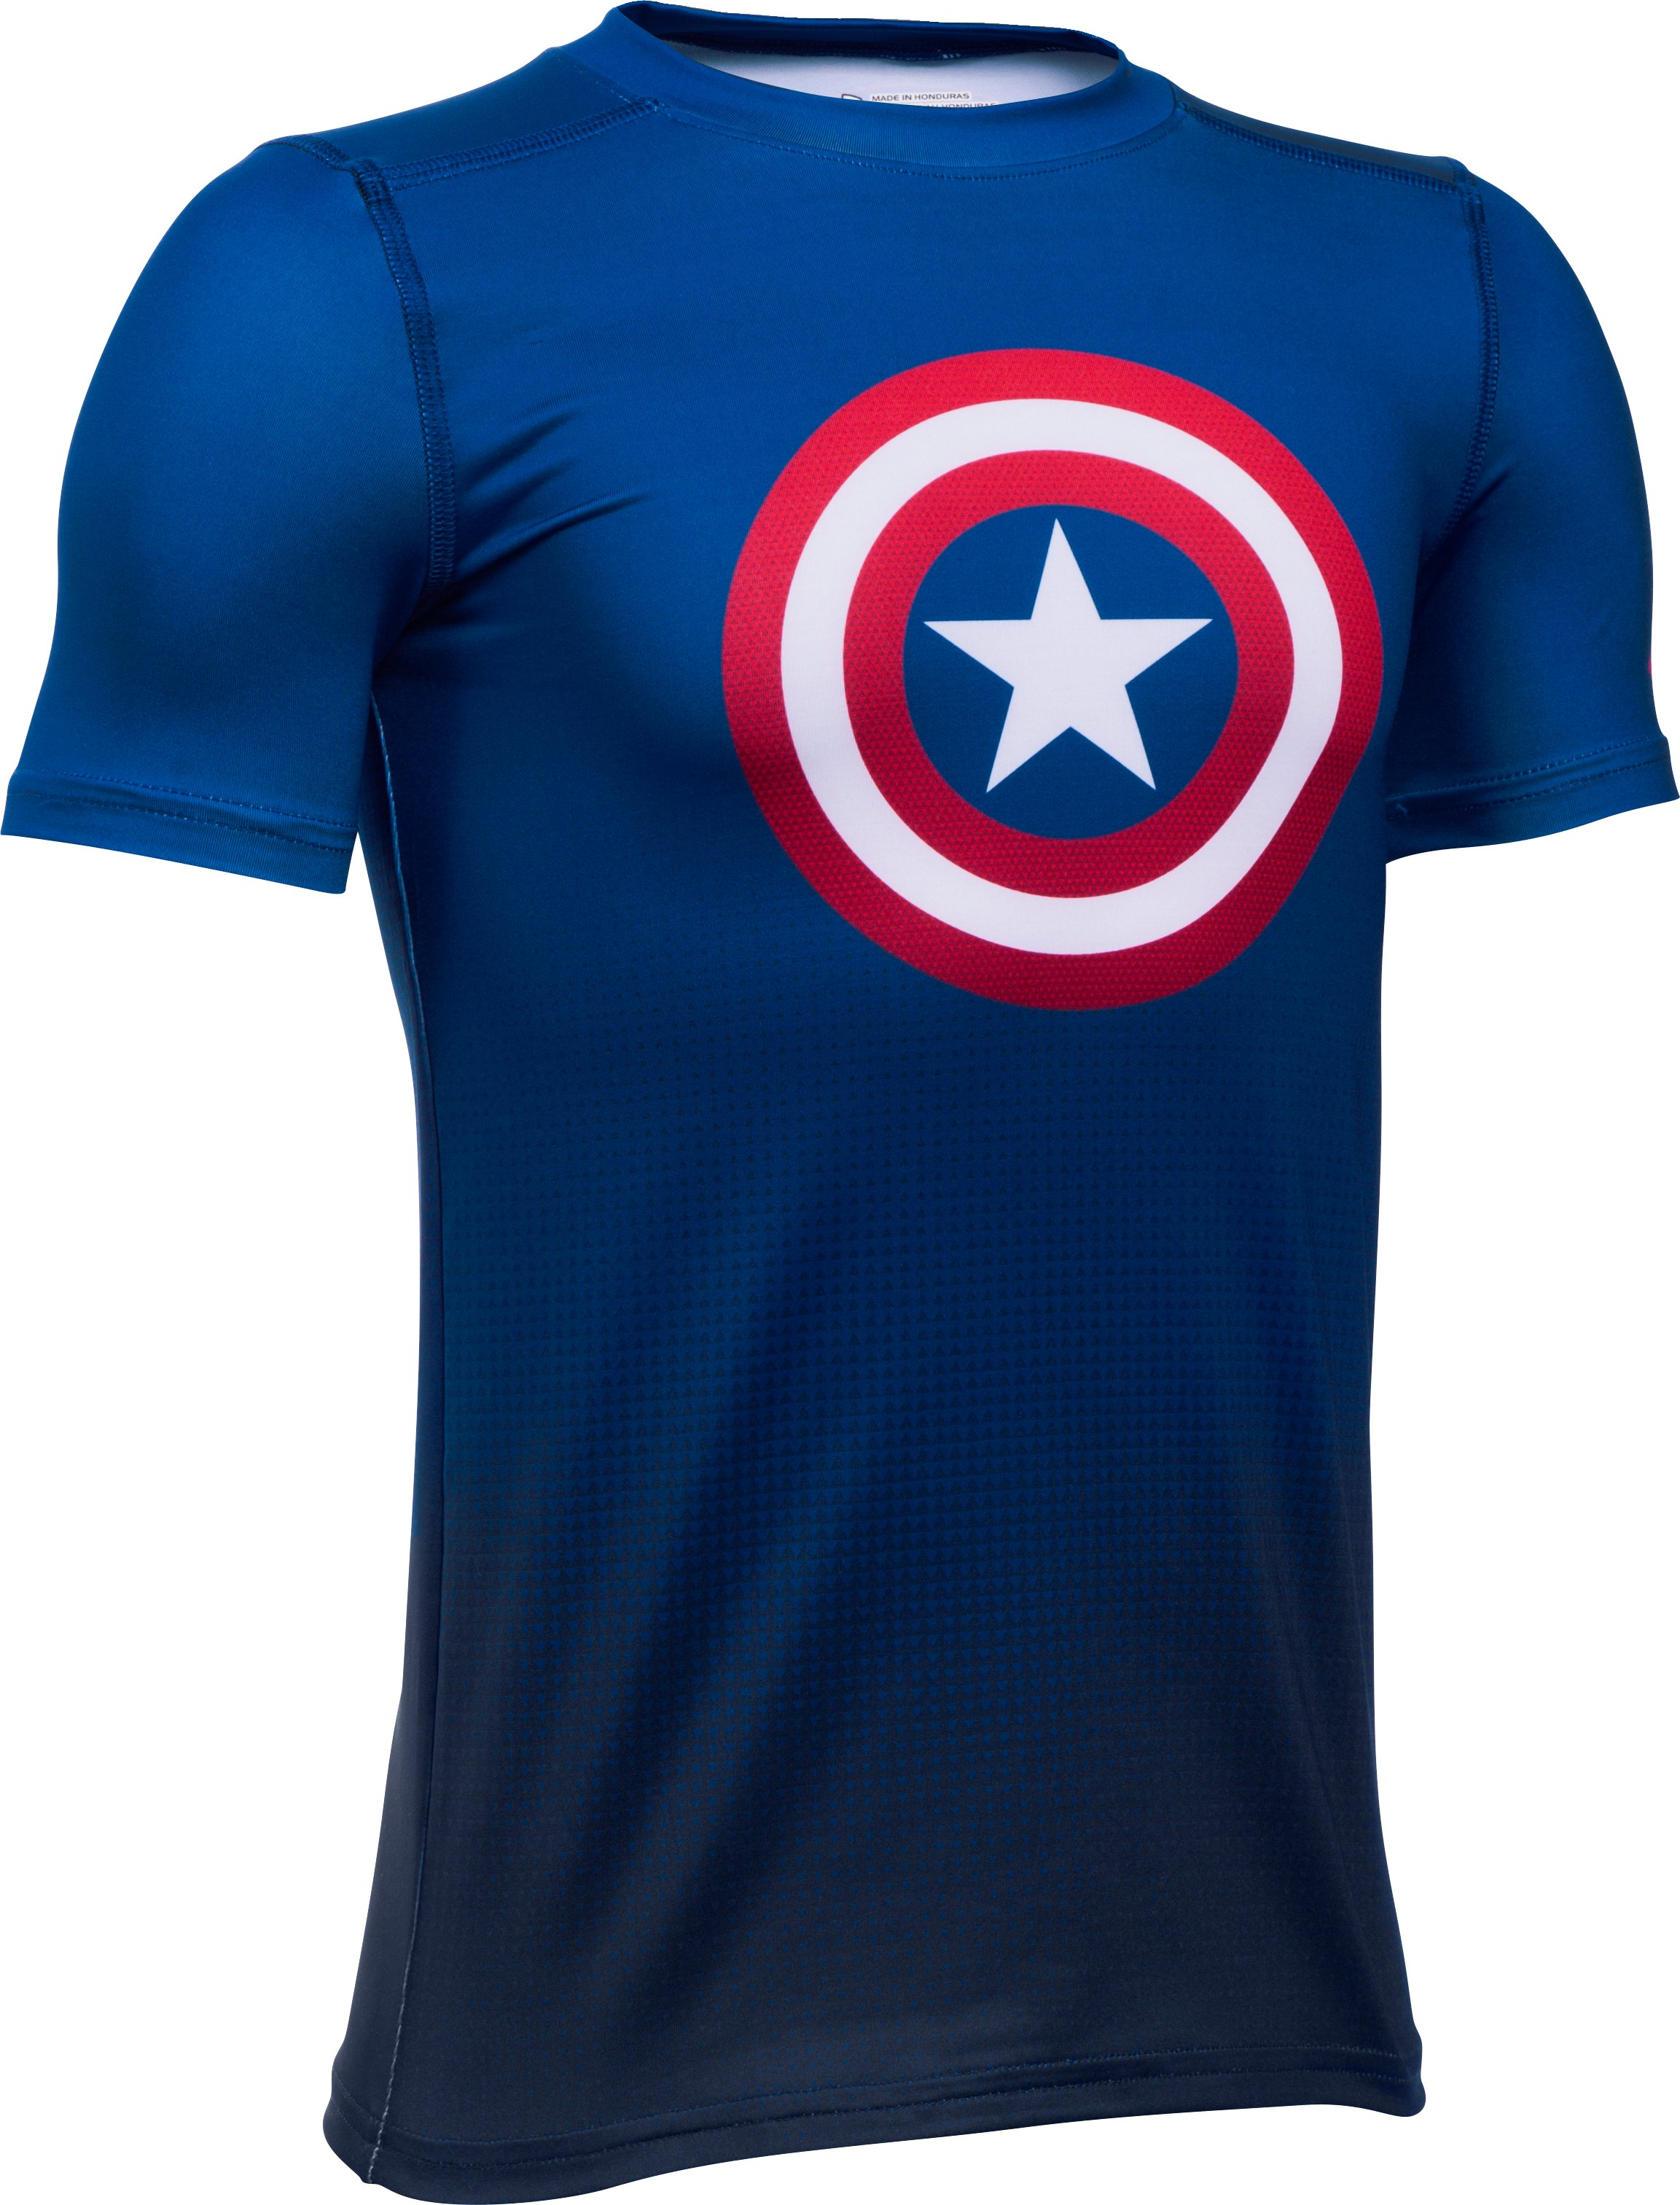 Boys' Under Armour® Alter Ego Marvel Fitted Baselayer, Royal